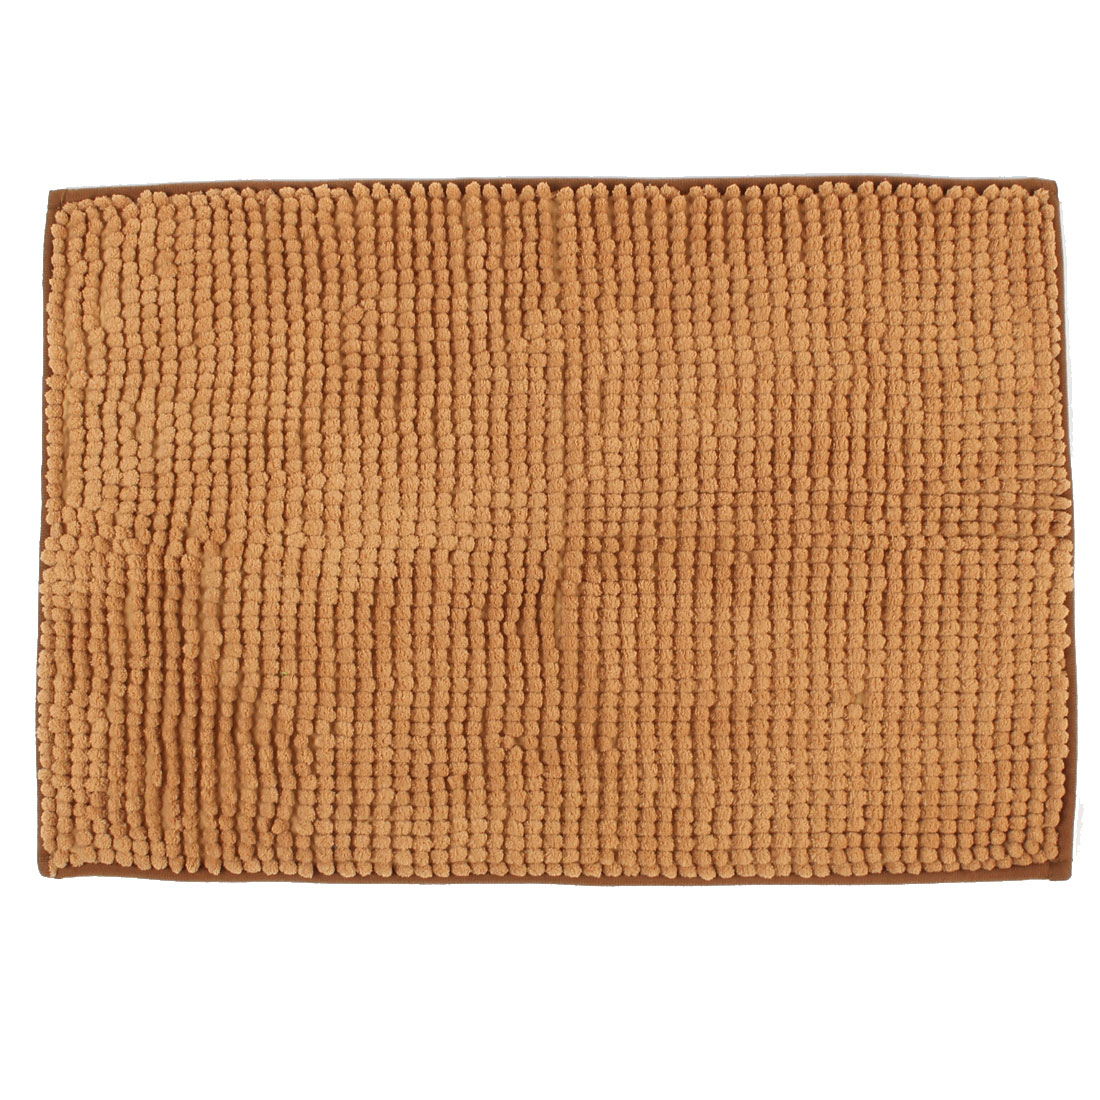 Household Bathroom Washable Non Slip Absorbent Bath Mat Light Brown 24 x 16 Inch